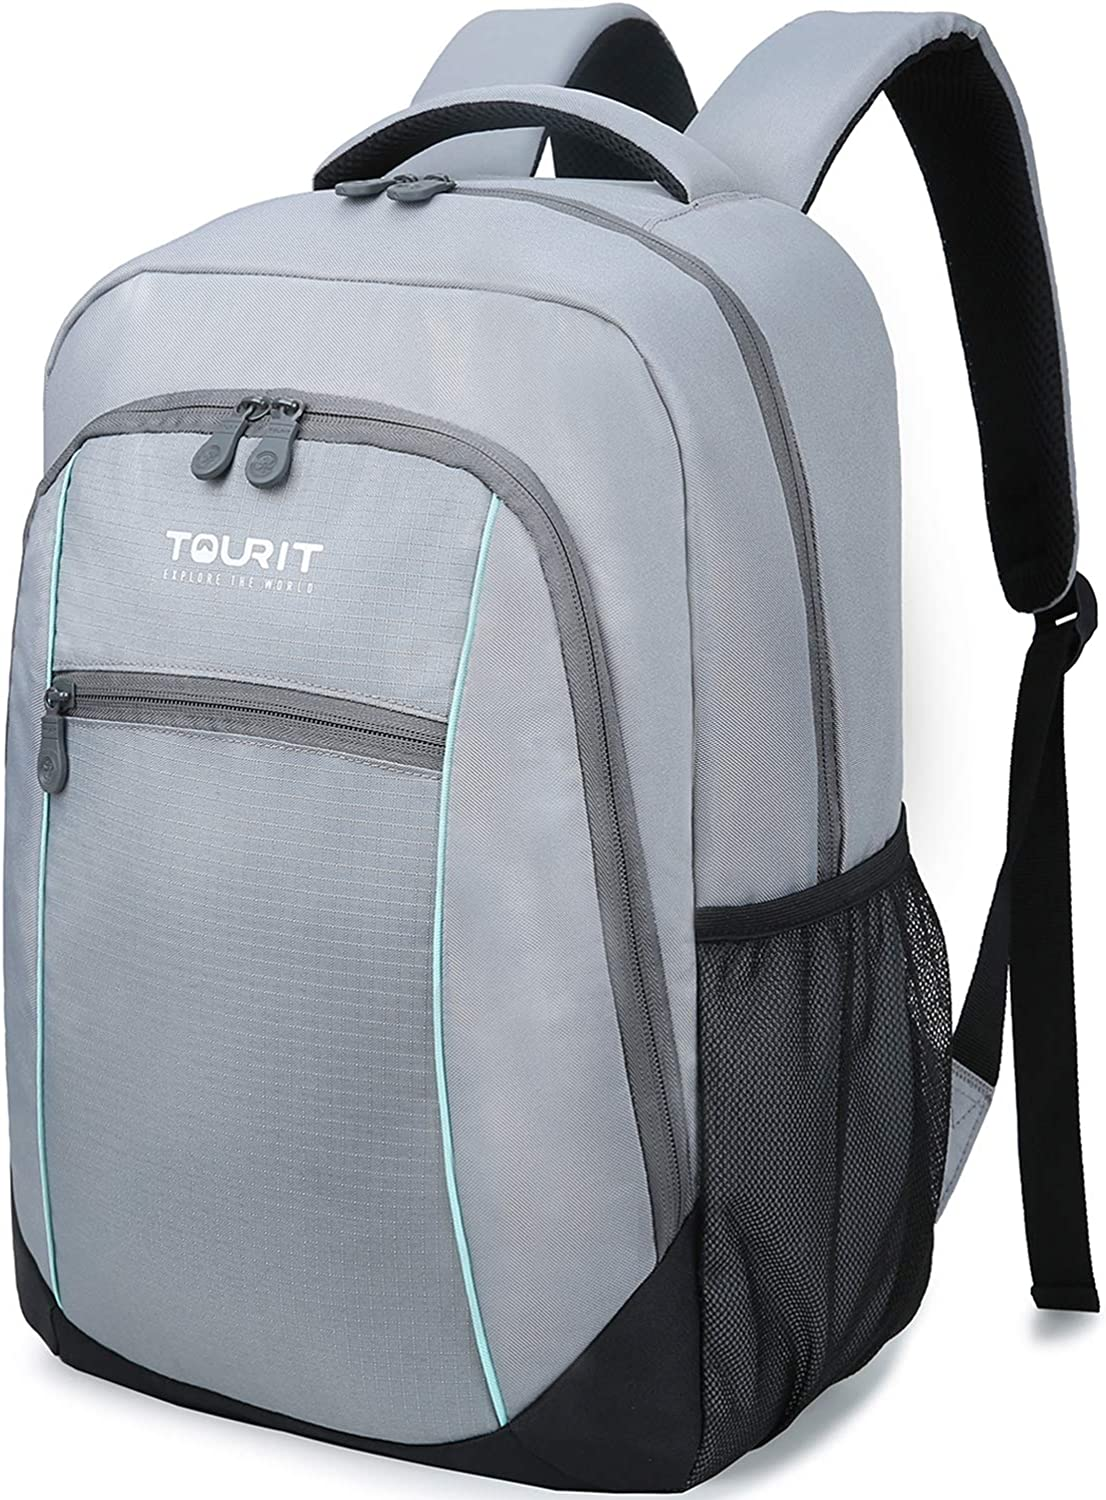 TOURIT Insulated Hiking Backpack